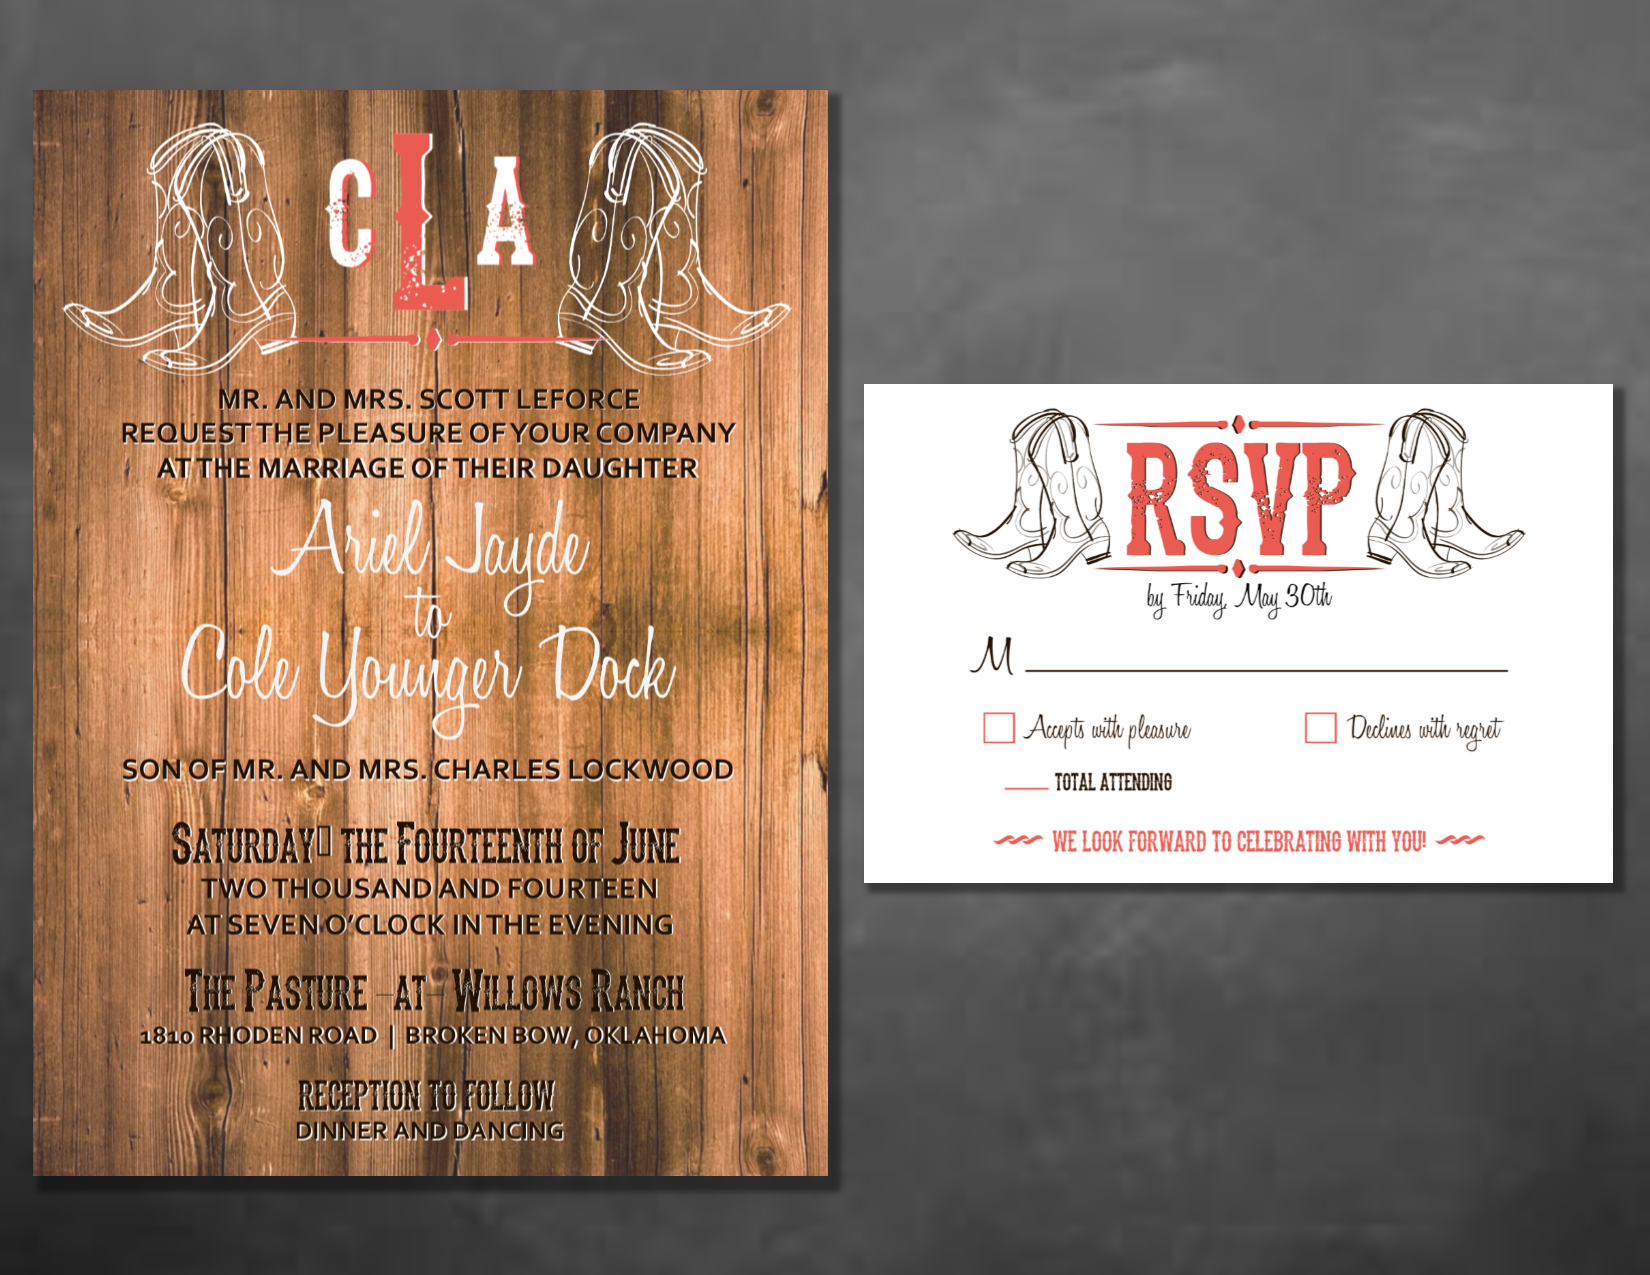 Rustic Country Cowboy Wood Themed Wedding Invitation Set By Wentroth Designs Visit Us On Facebook